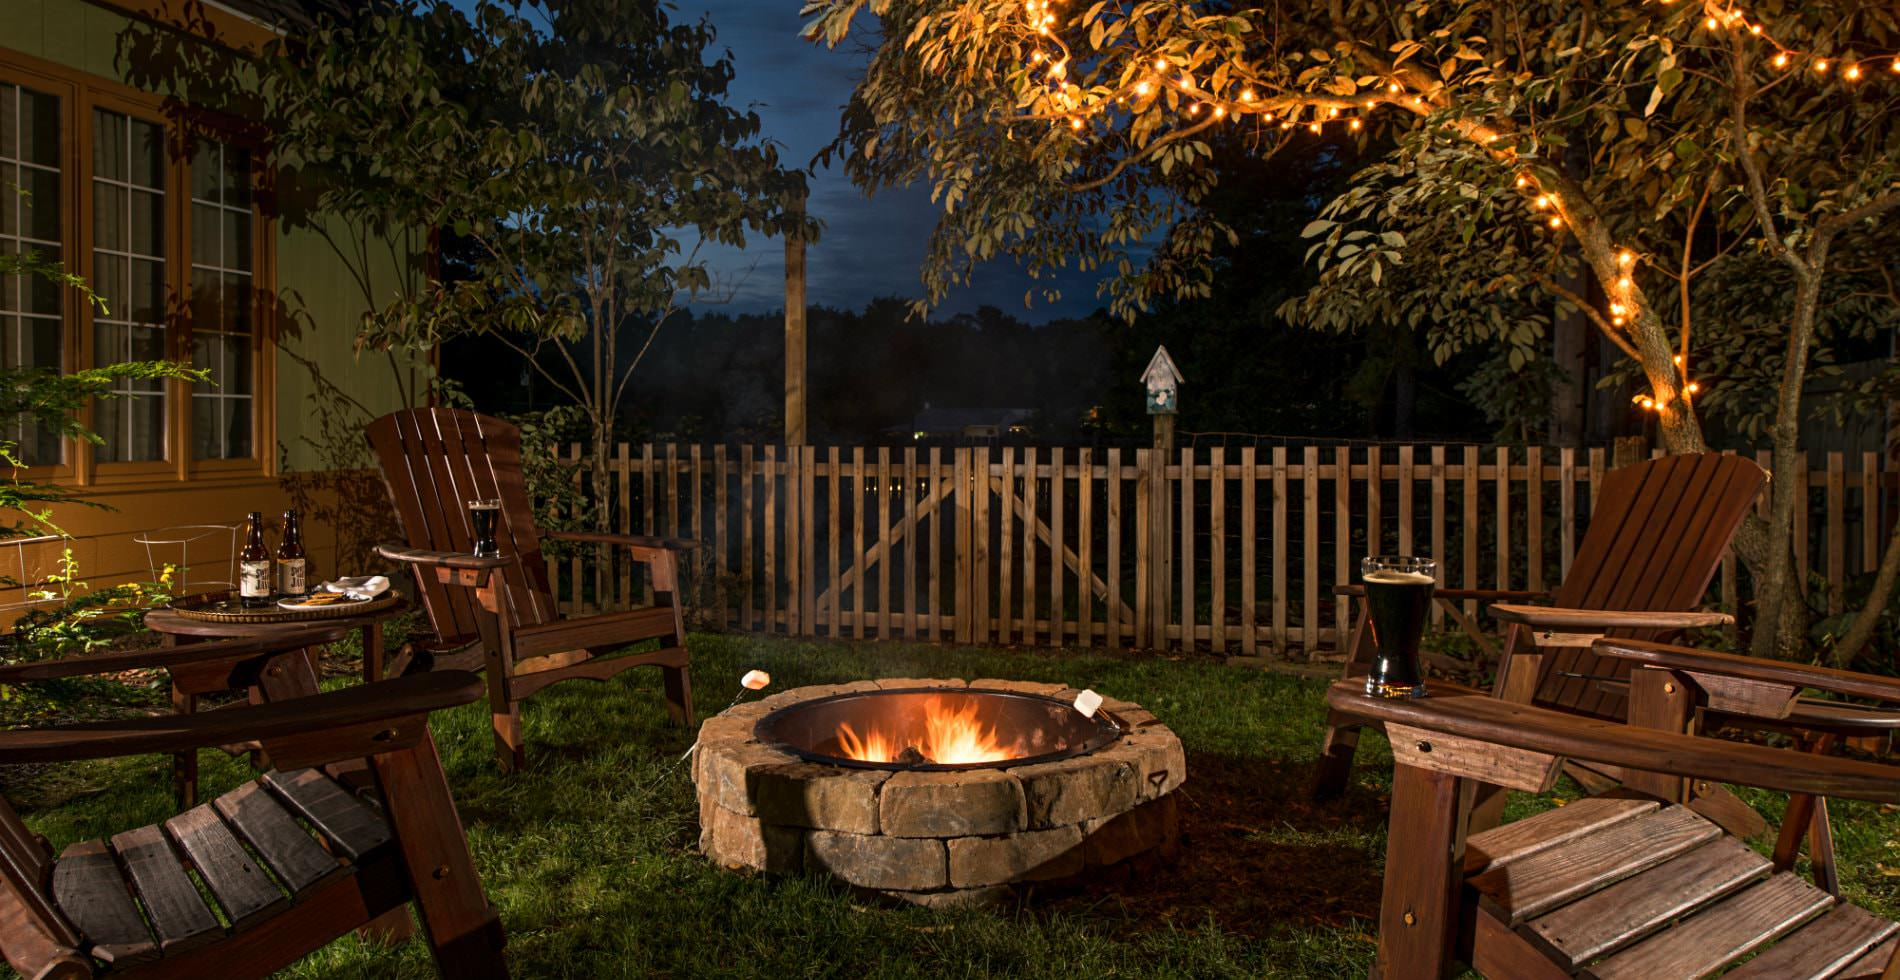 Cozy outdoor setting at nighttime, wooden lawn chairs surrounding a stone fireplace, twinkle lights in the trees,